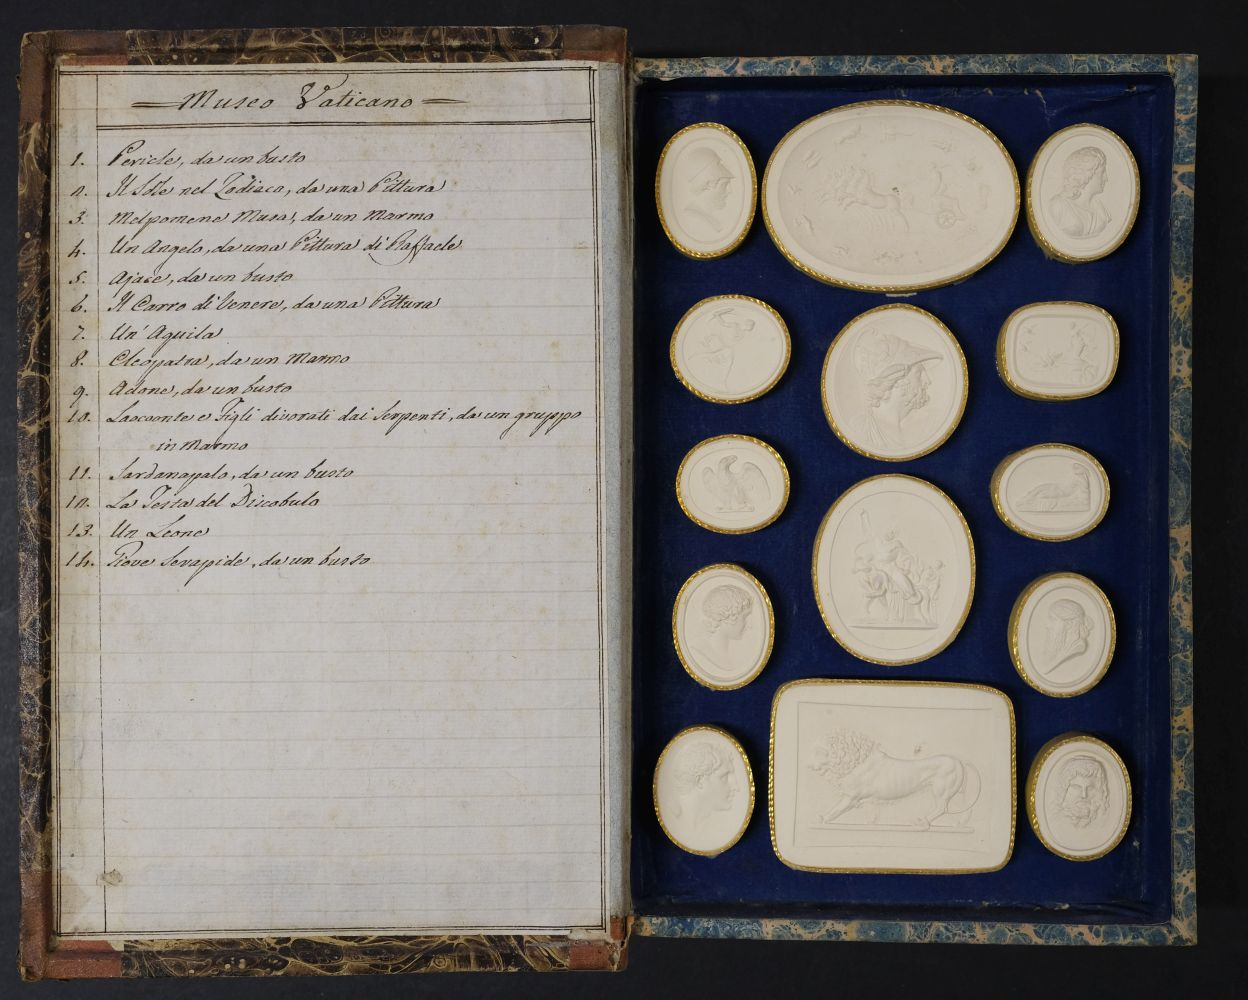 Paoletti (Bartolomeo and Pietro). A collection of 300 plaster cameos, 1820 - Image 8 of 16